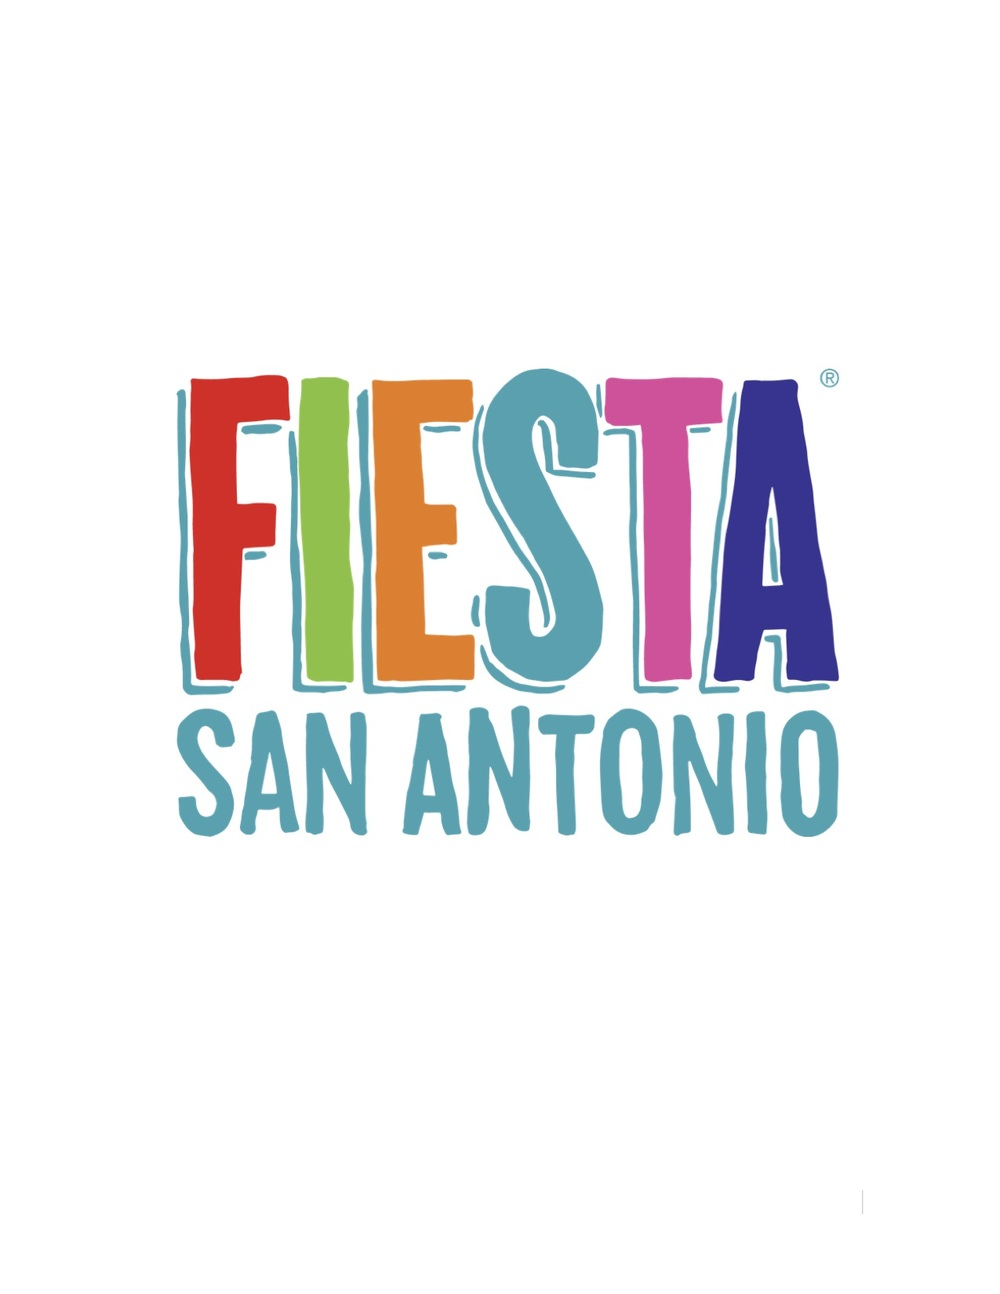 Strategy Documents: Fiesta 2016 After-Action Report